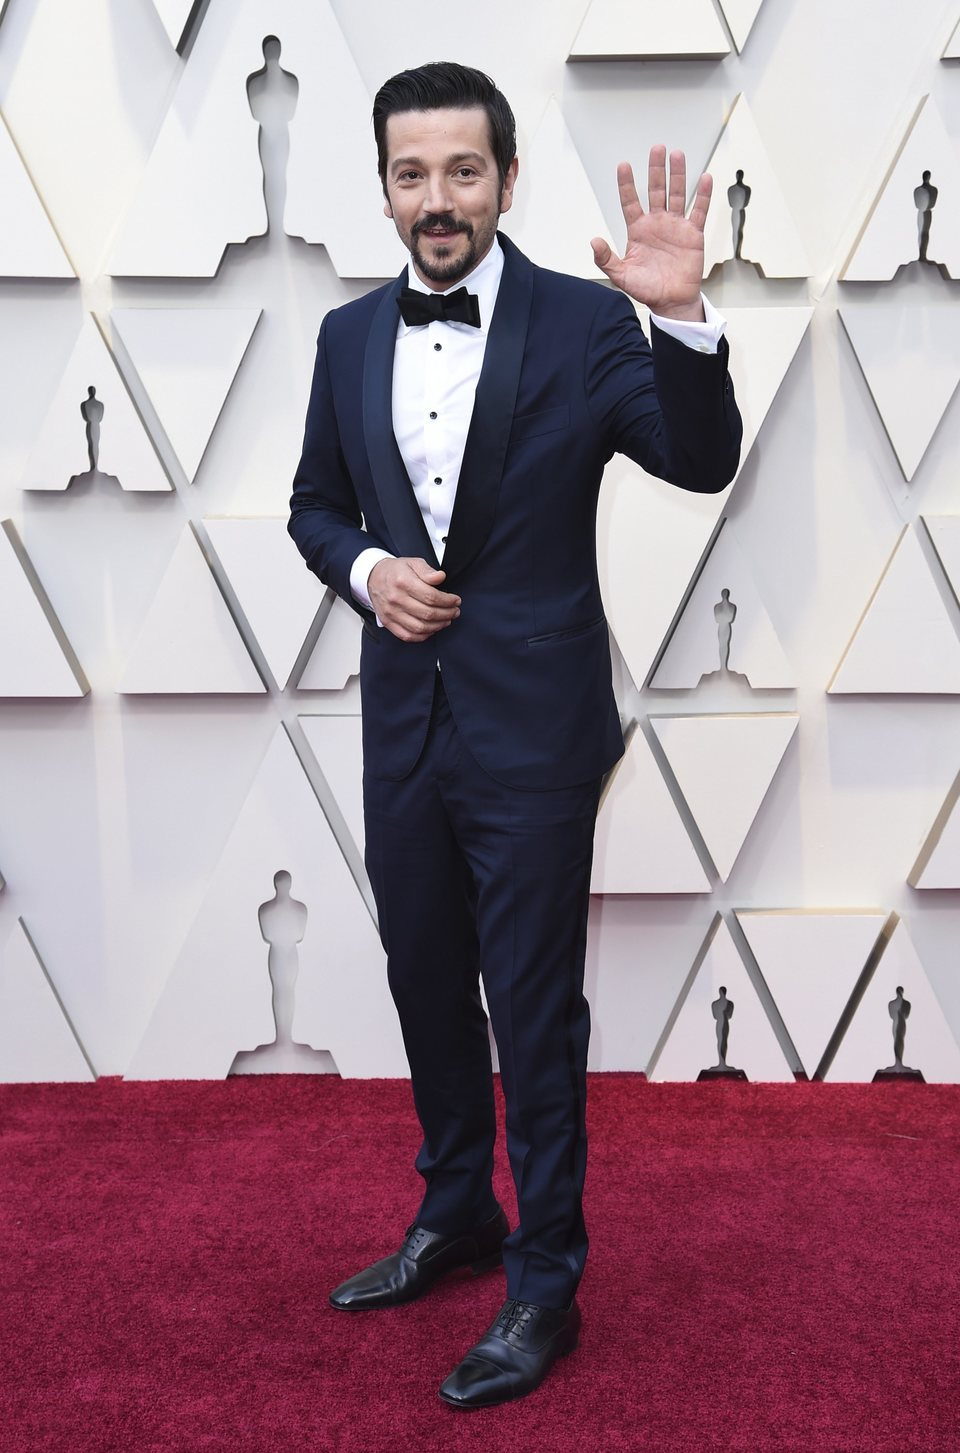 Diego Luna at the Oscars 2019 red carpet